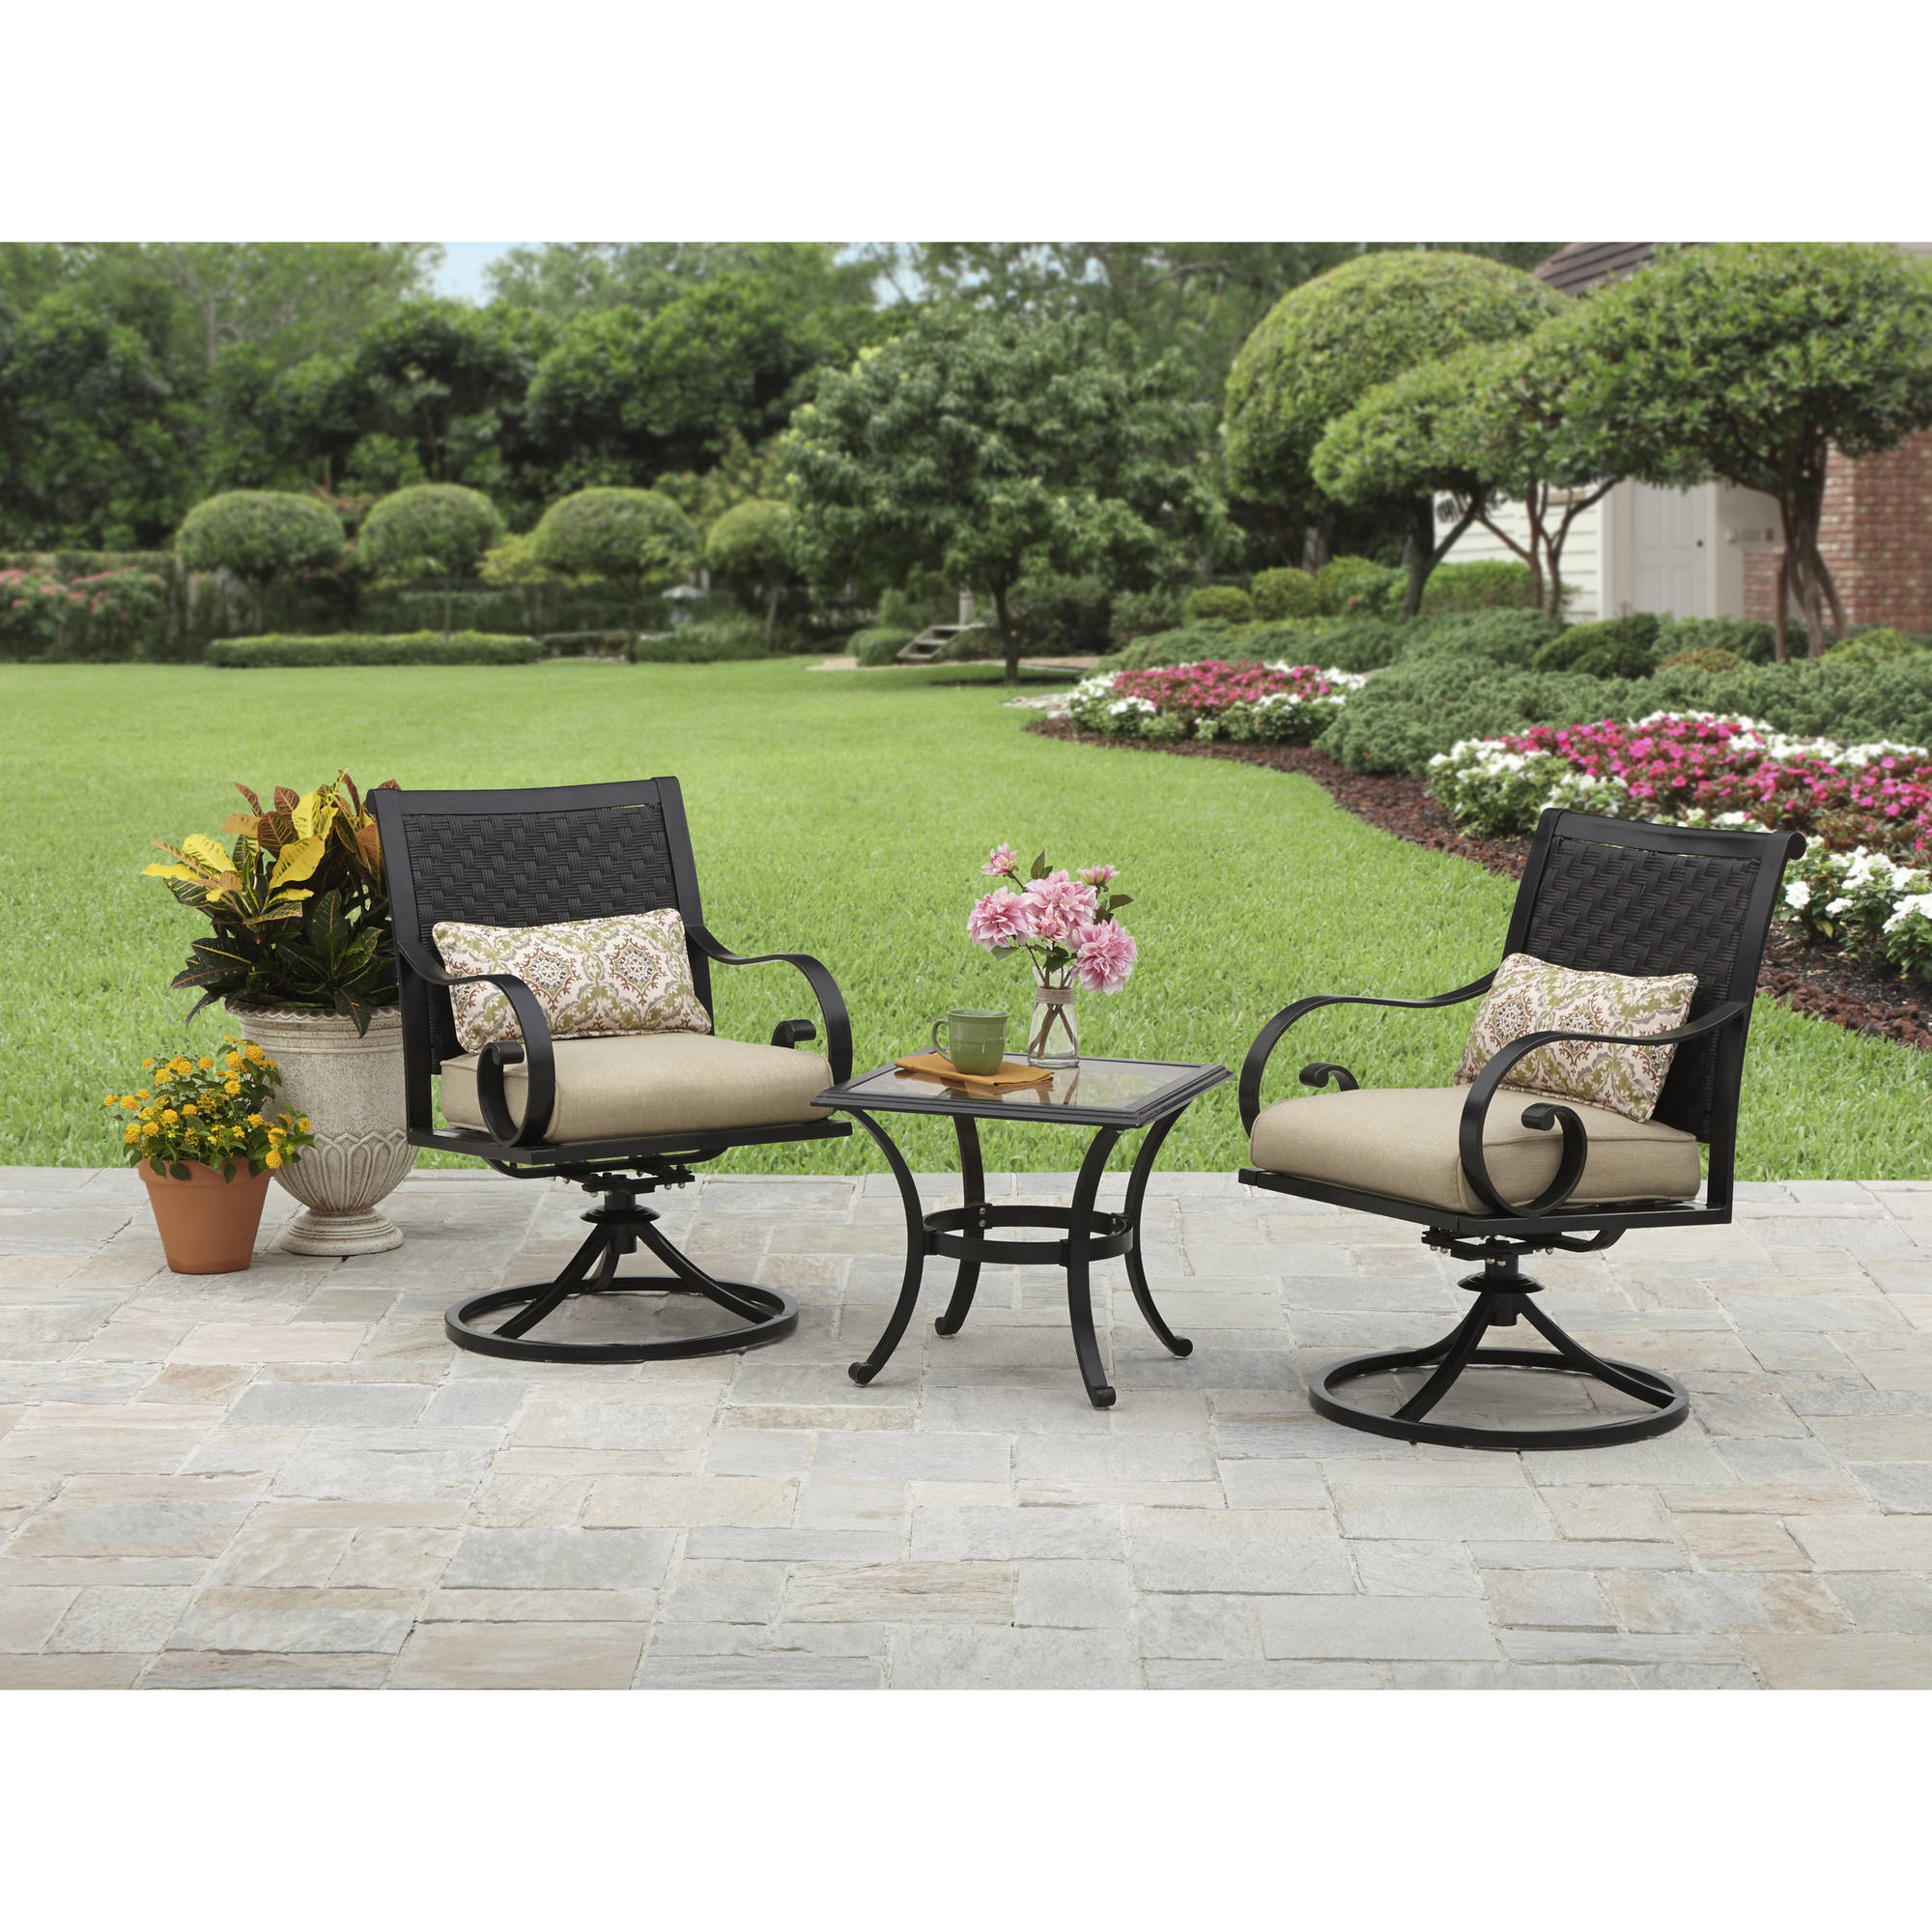 Better Homes and Gardens Englewood Heights II Aluminum 3-Piece Outdoor Bistro Set, Seats 2